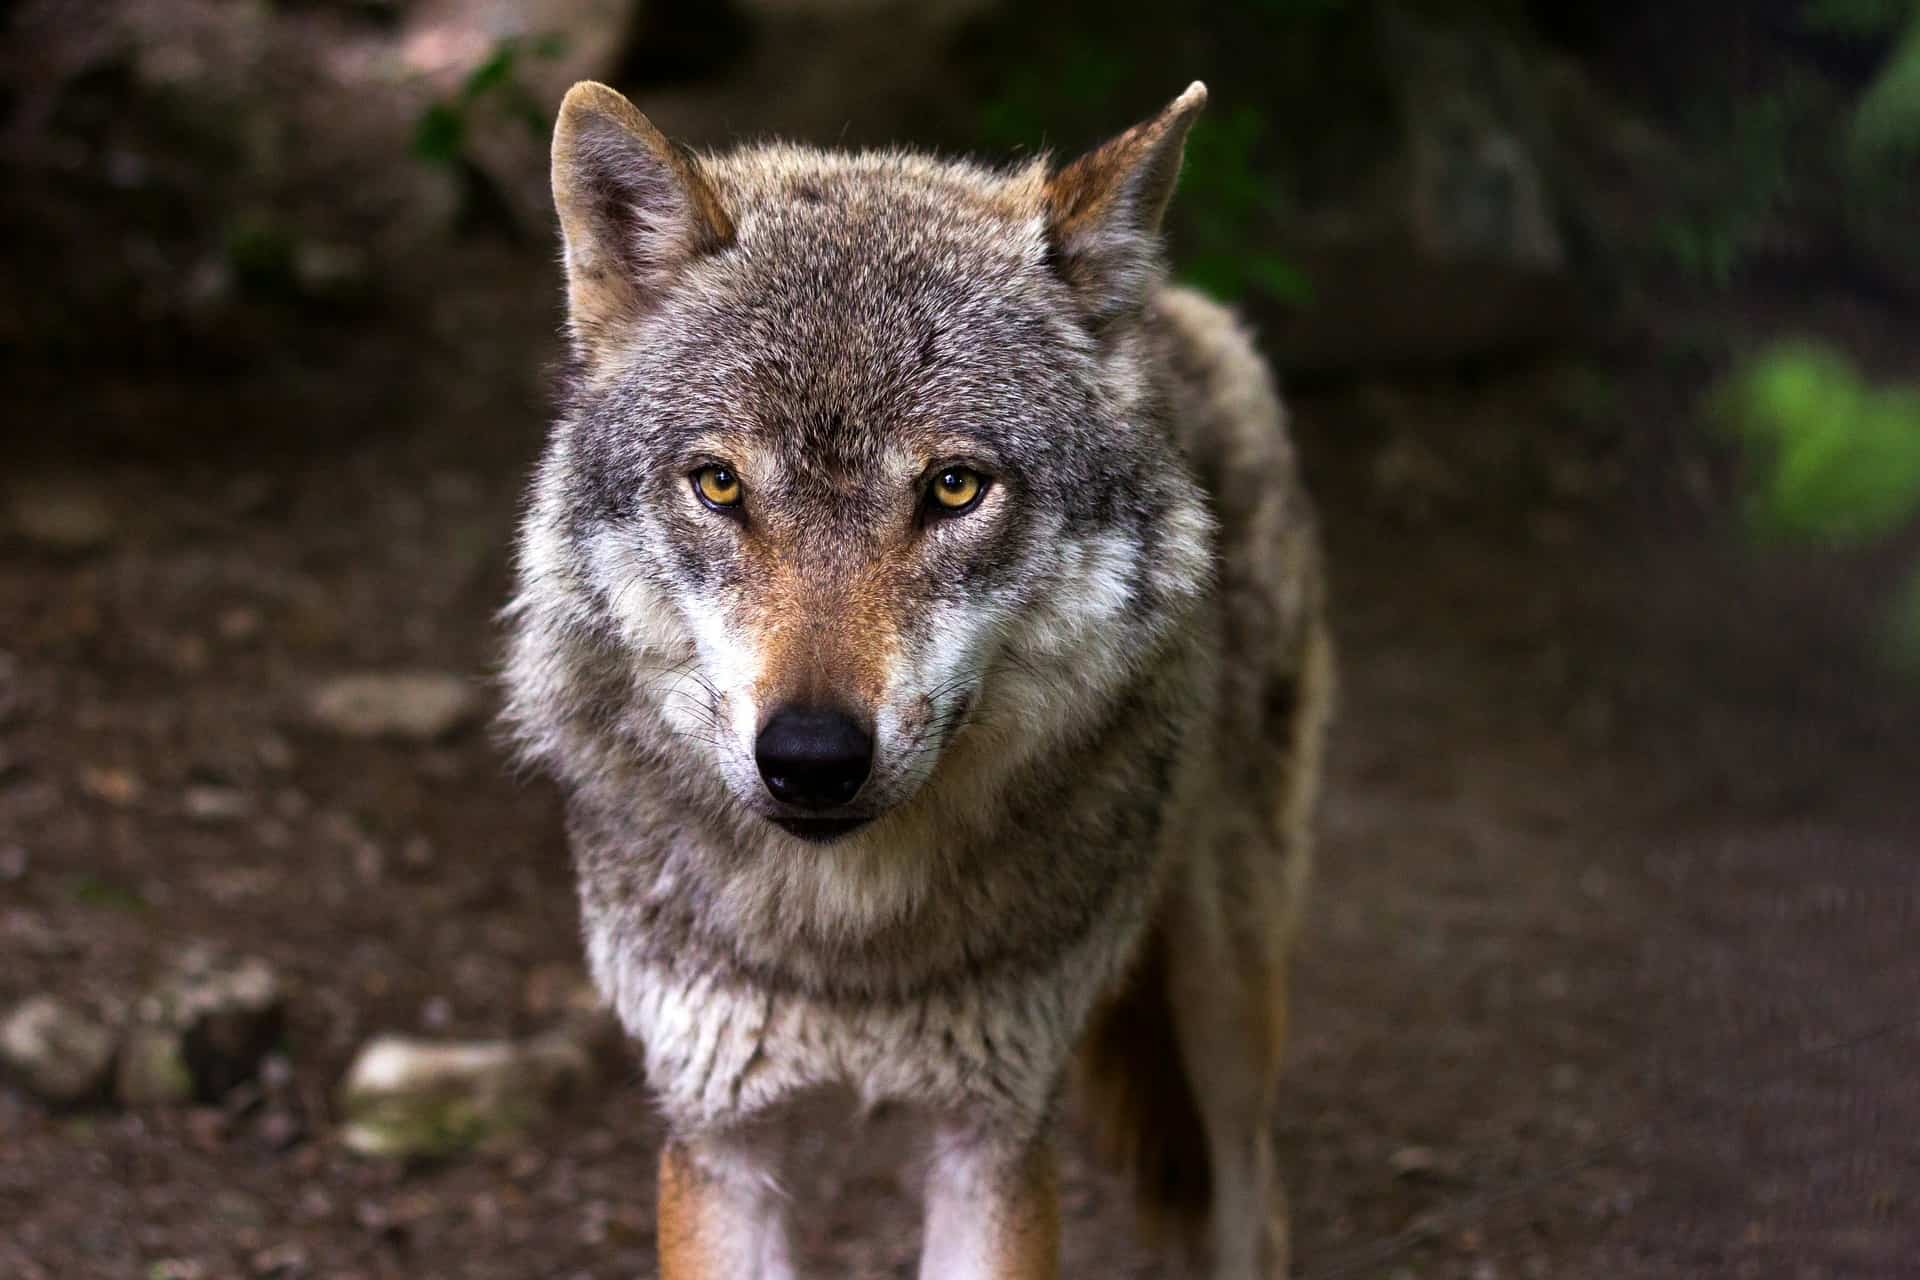 The wolf is one of the largest predators in Finland. The number of wolves in Finland has increased enormously in recent years.